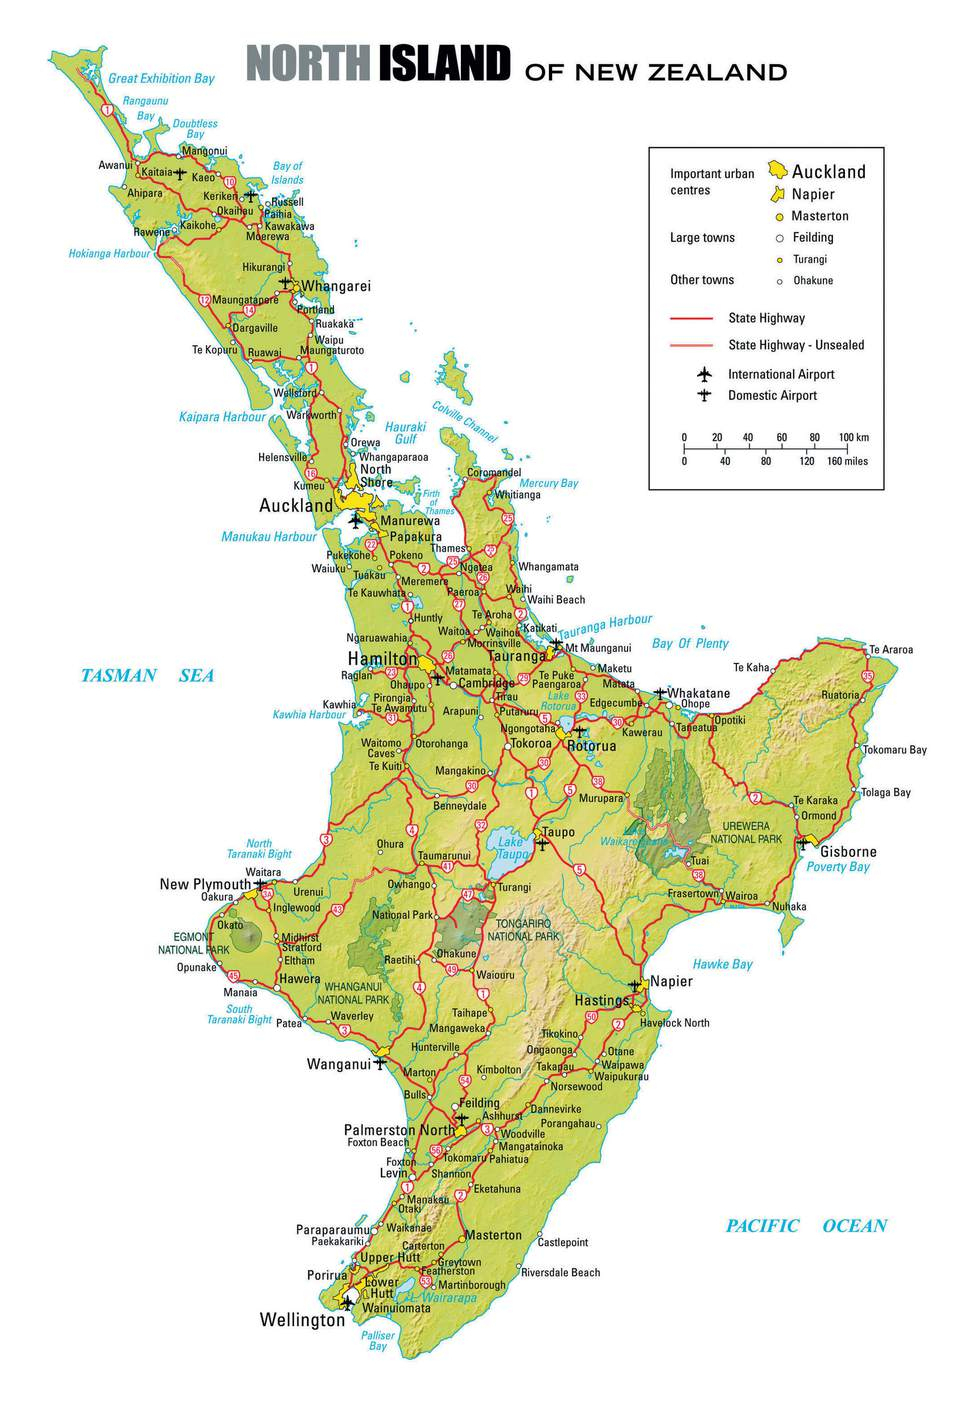 Take A Road Trip On New Zealand's North Island - New Zealand South Island Map Printable